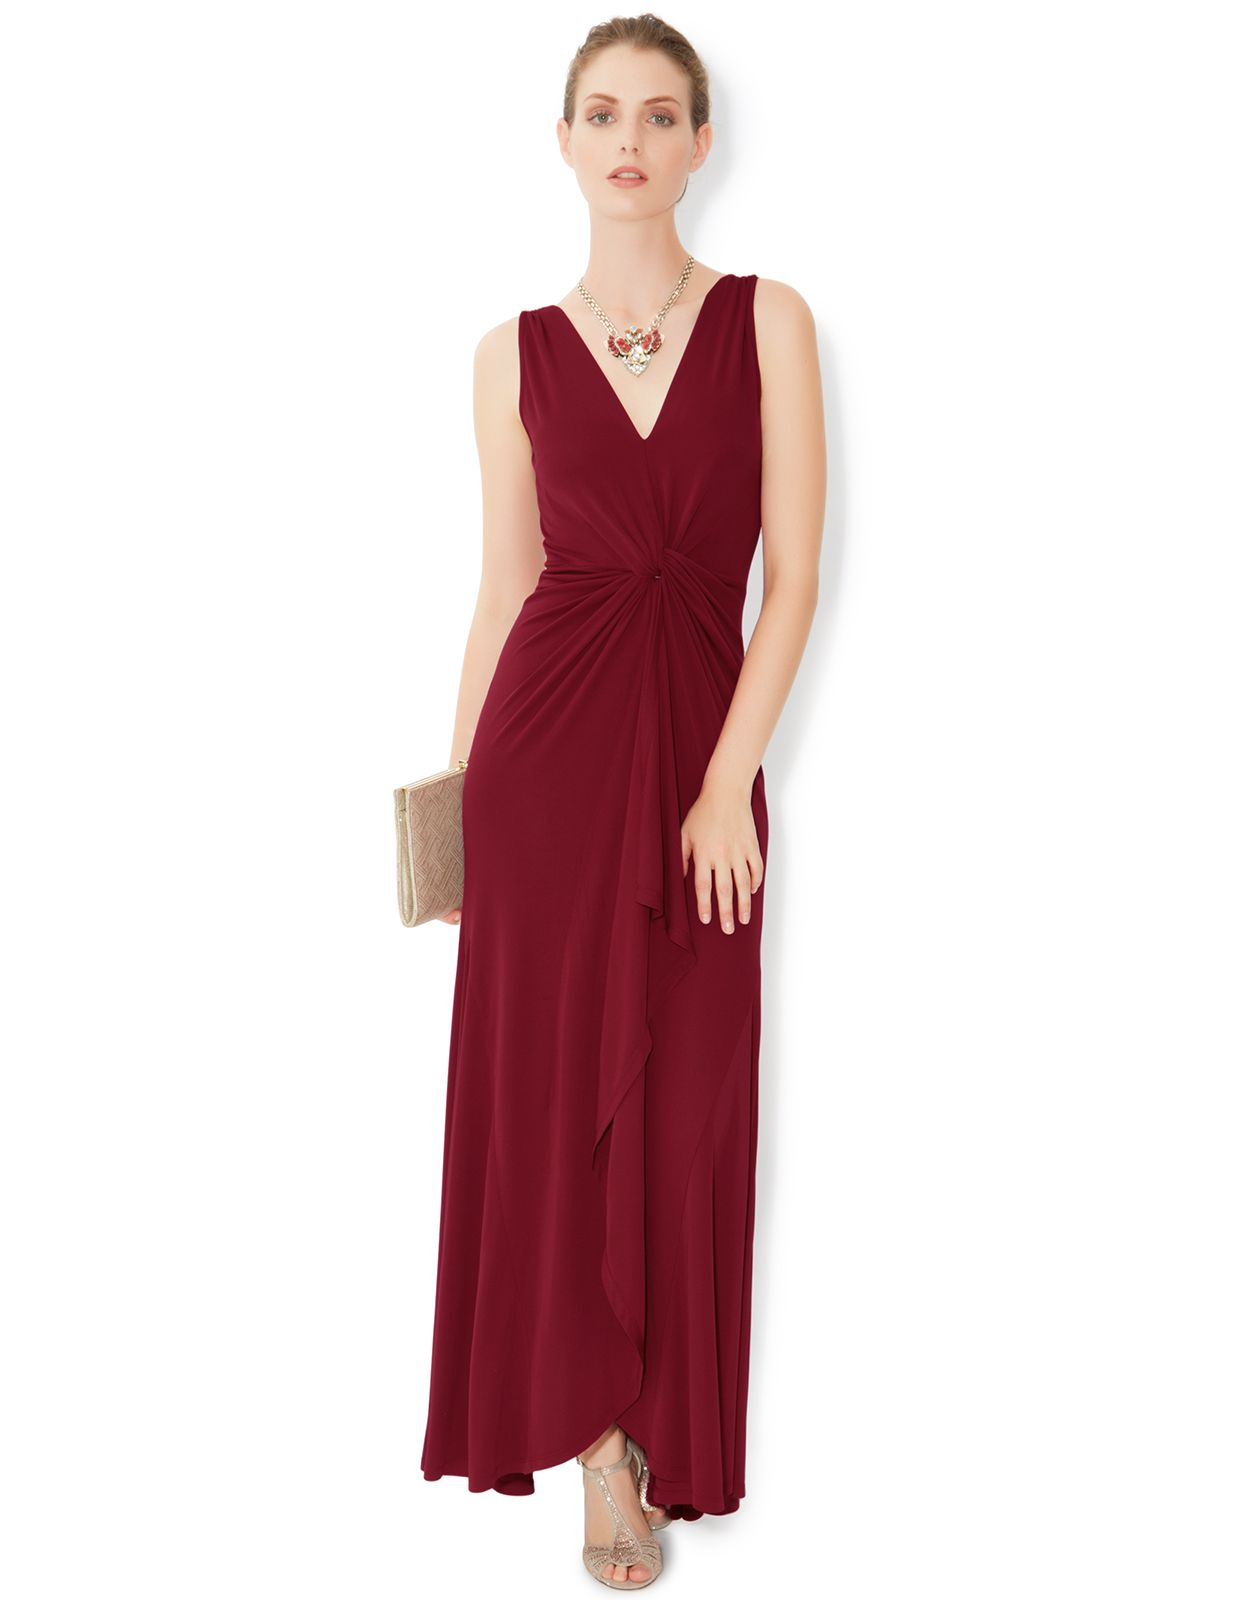 Summer dresses to wear to a wedding  Cath Maxi  Red  Monsoon  Things to Wear  Pinterest  Monsoon